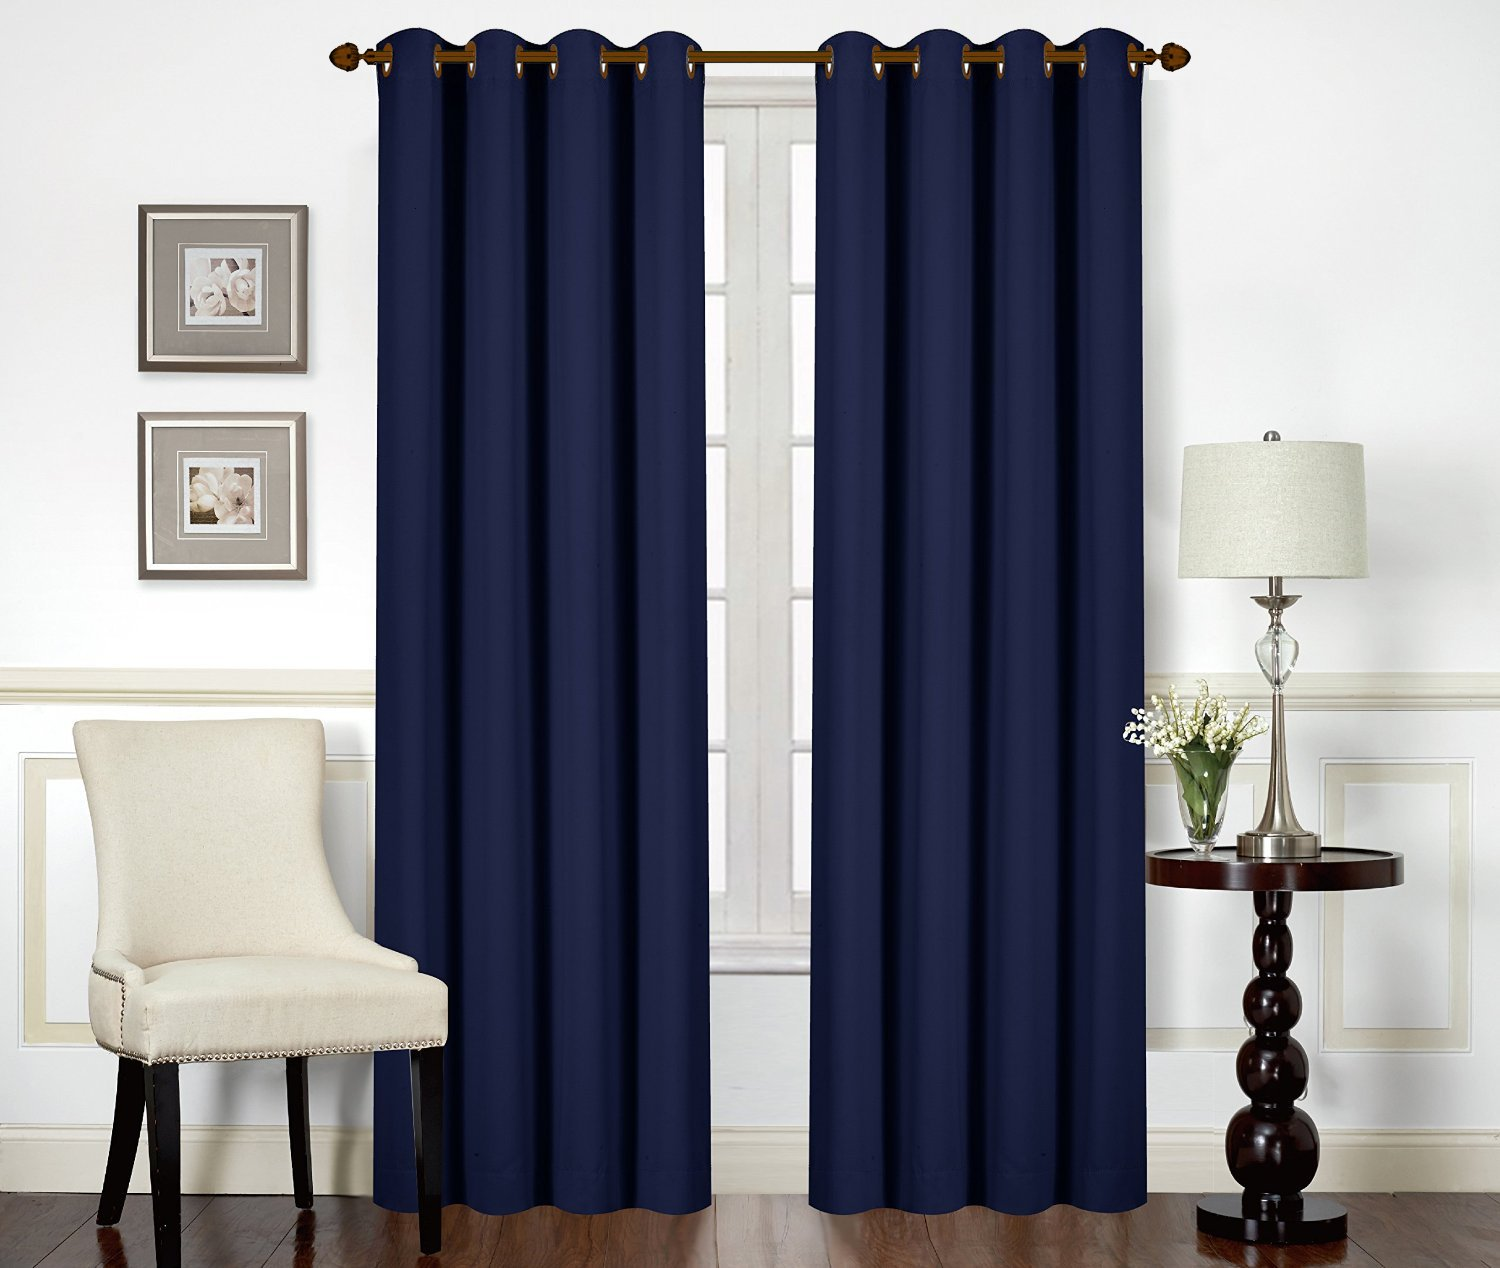 Utopia Bedding Best Blackout Curtains Review by www.snoremagazine.com